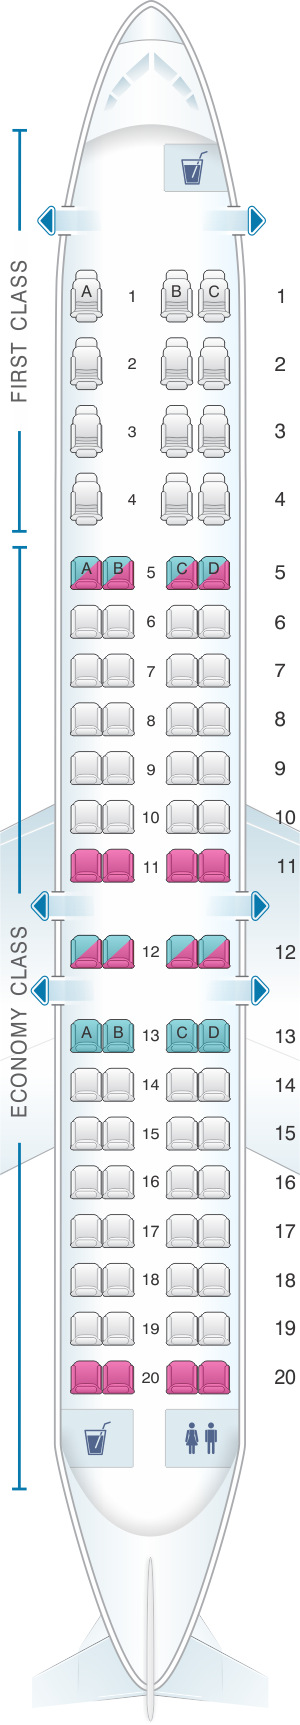 Seat map for ExpressJet Airlines CRJ 900